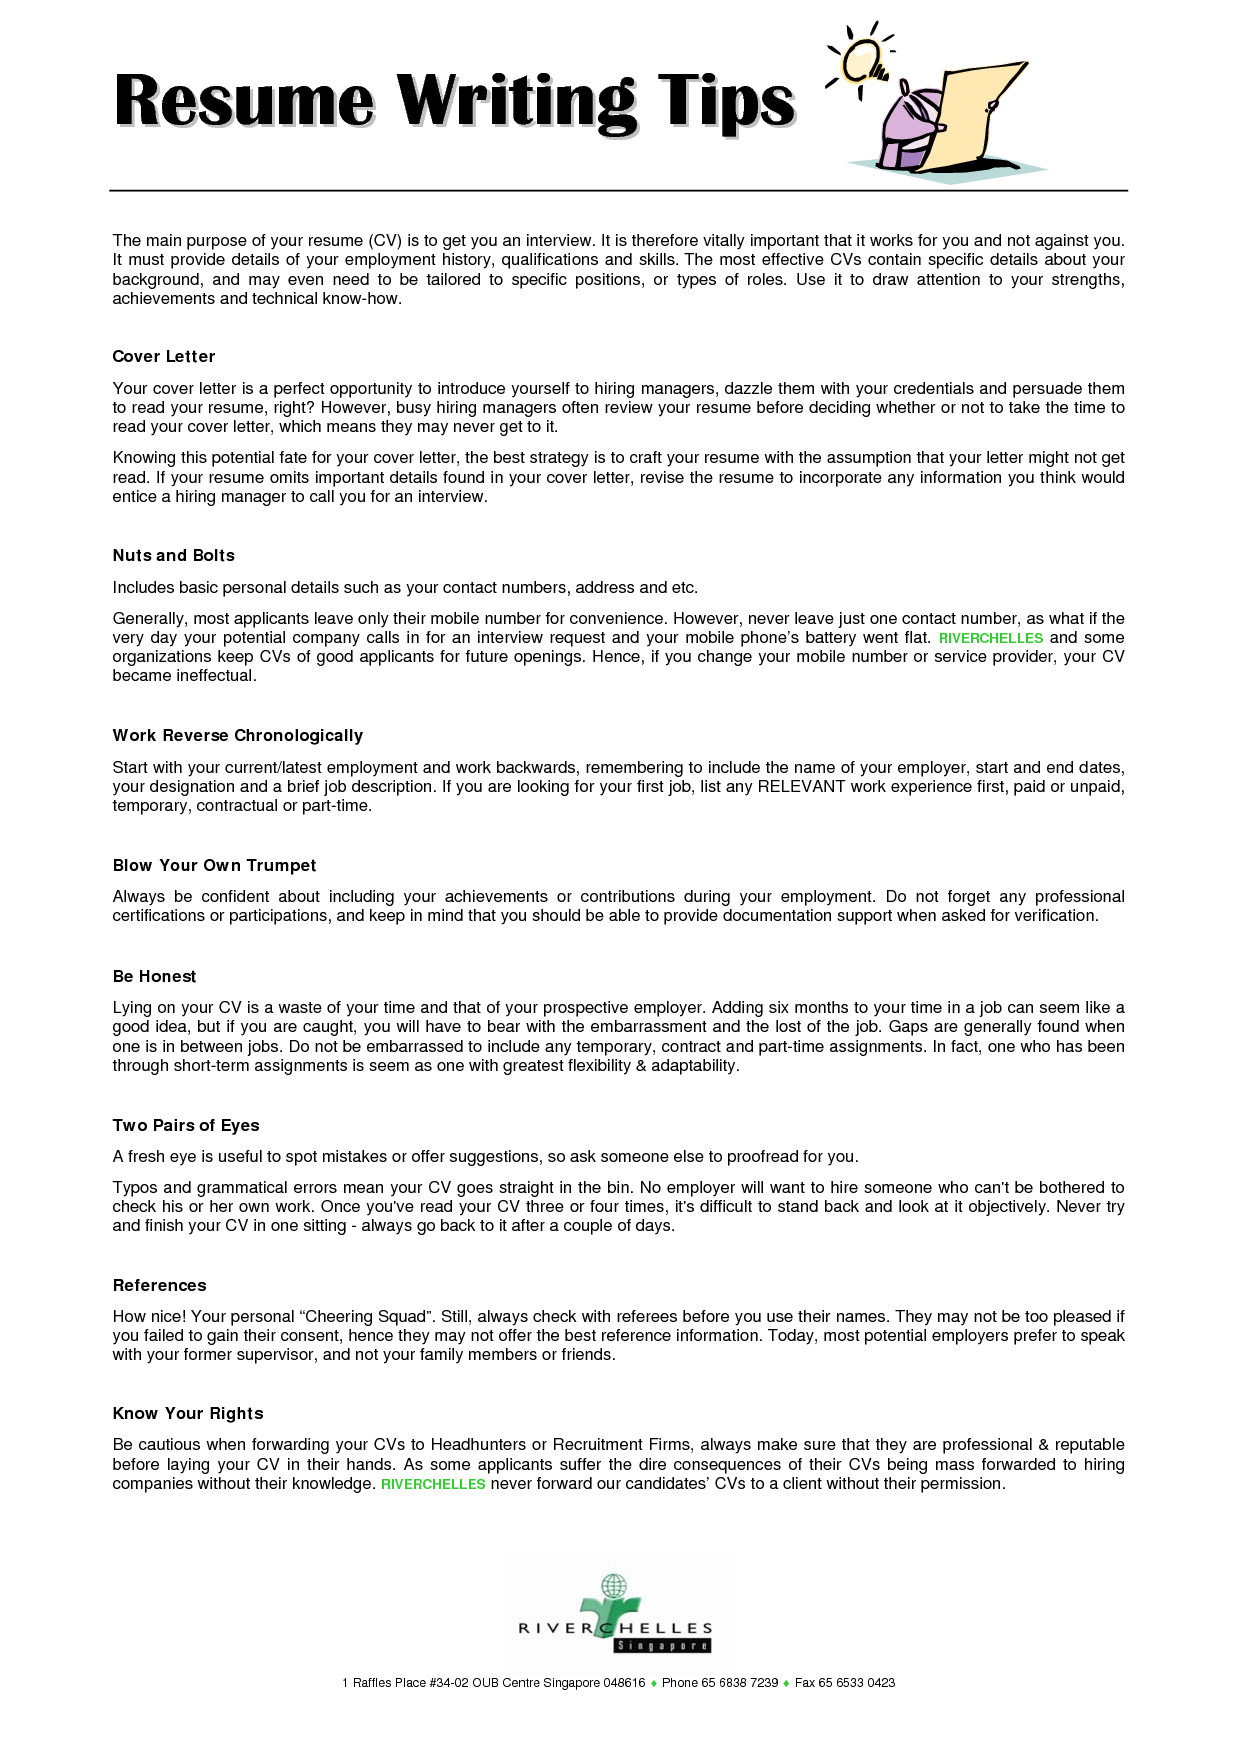 Cover Letter For Online Job Application  example of cover letter     A cover letter as a half assed cover letters gt  refers to a waitress for the cases where